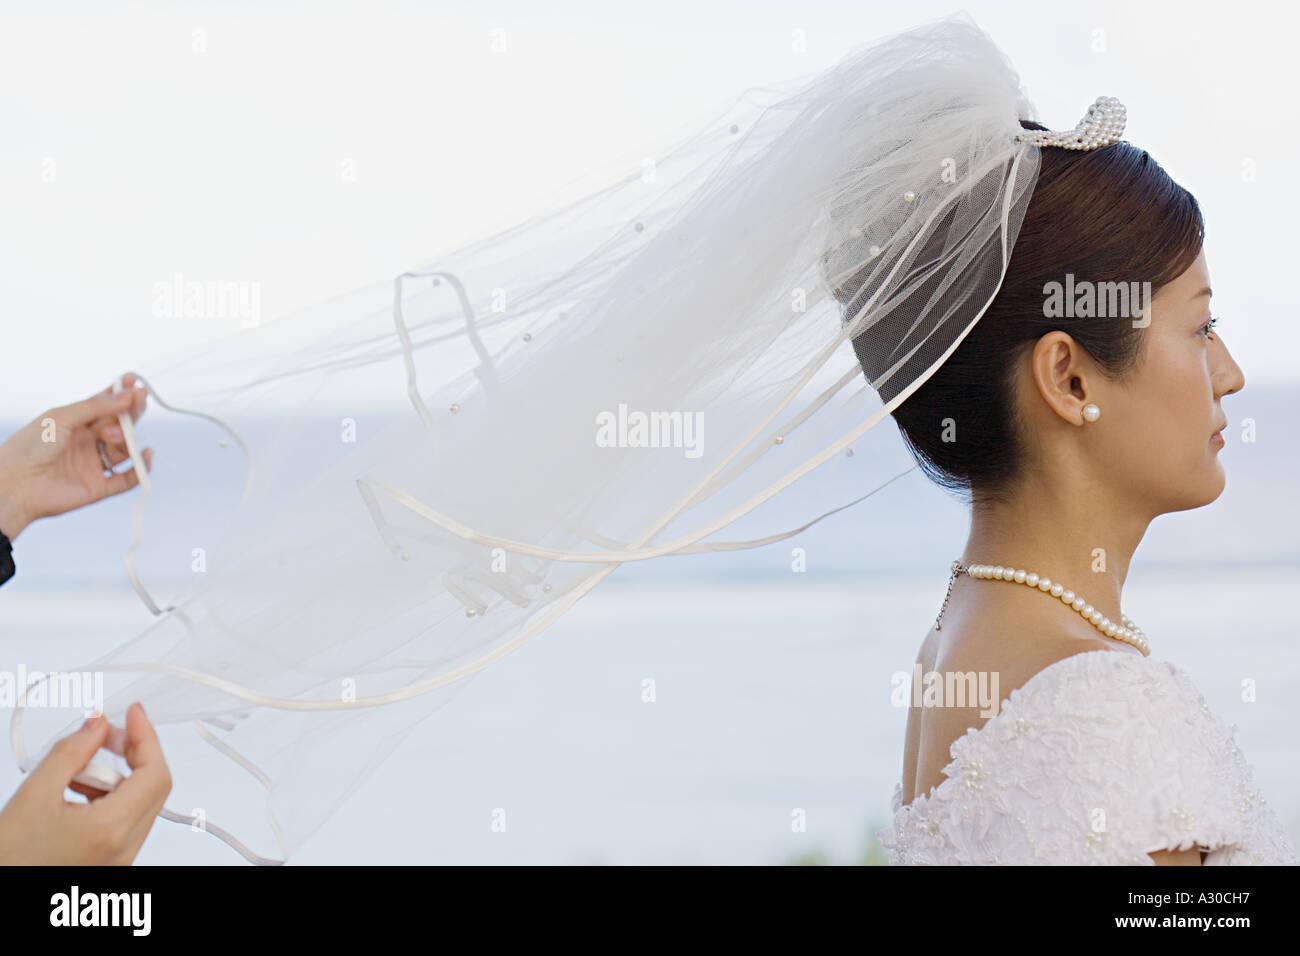 Hands holding bridal veil - Stock Image